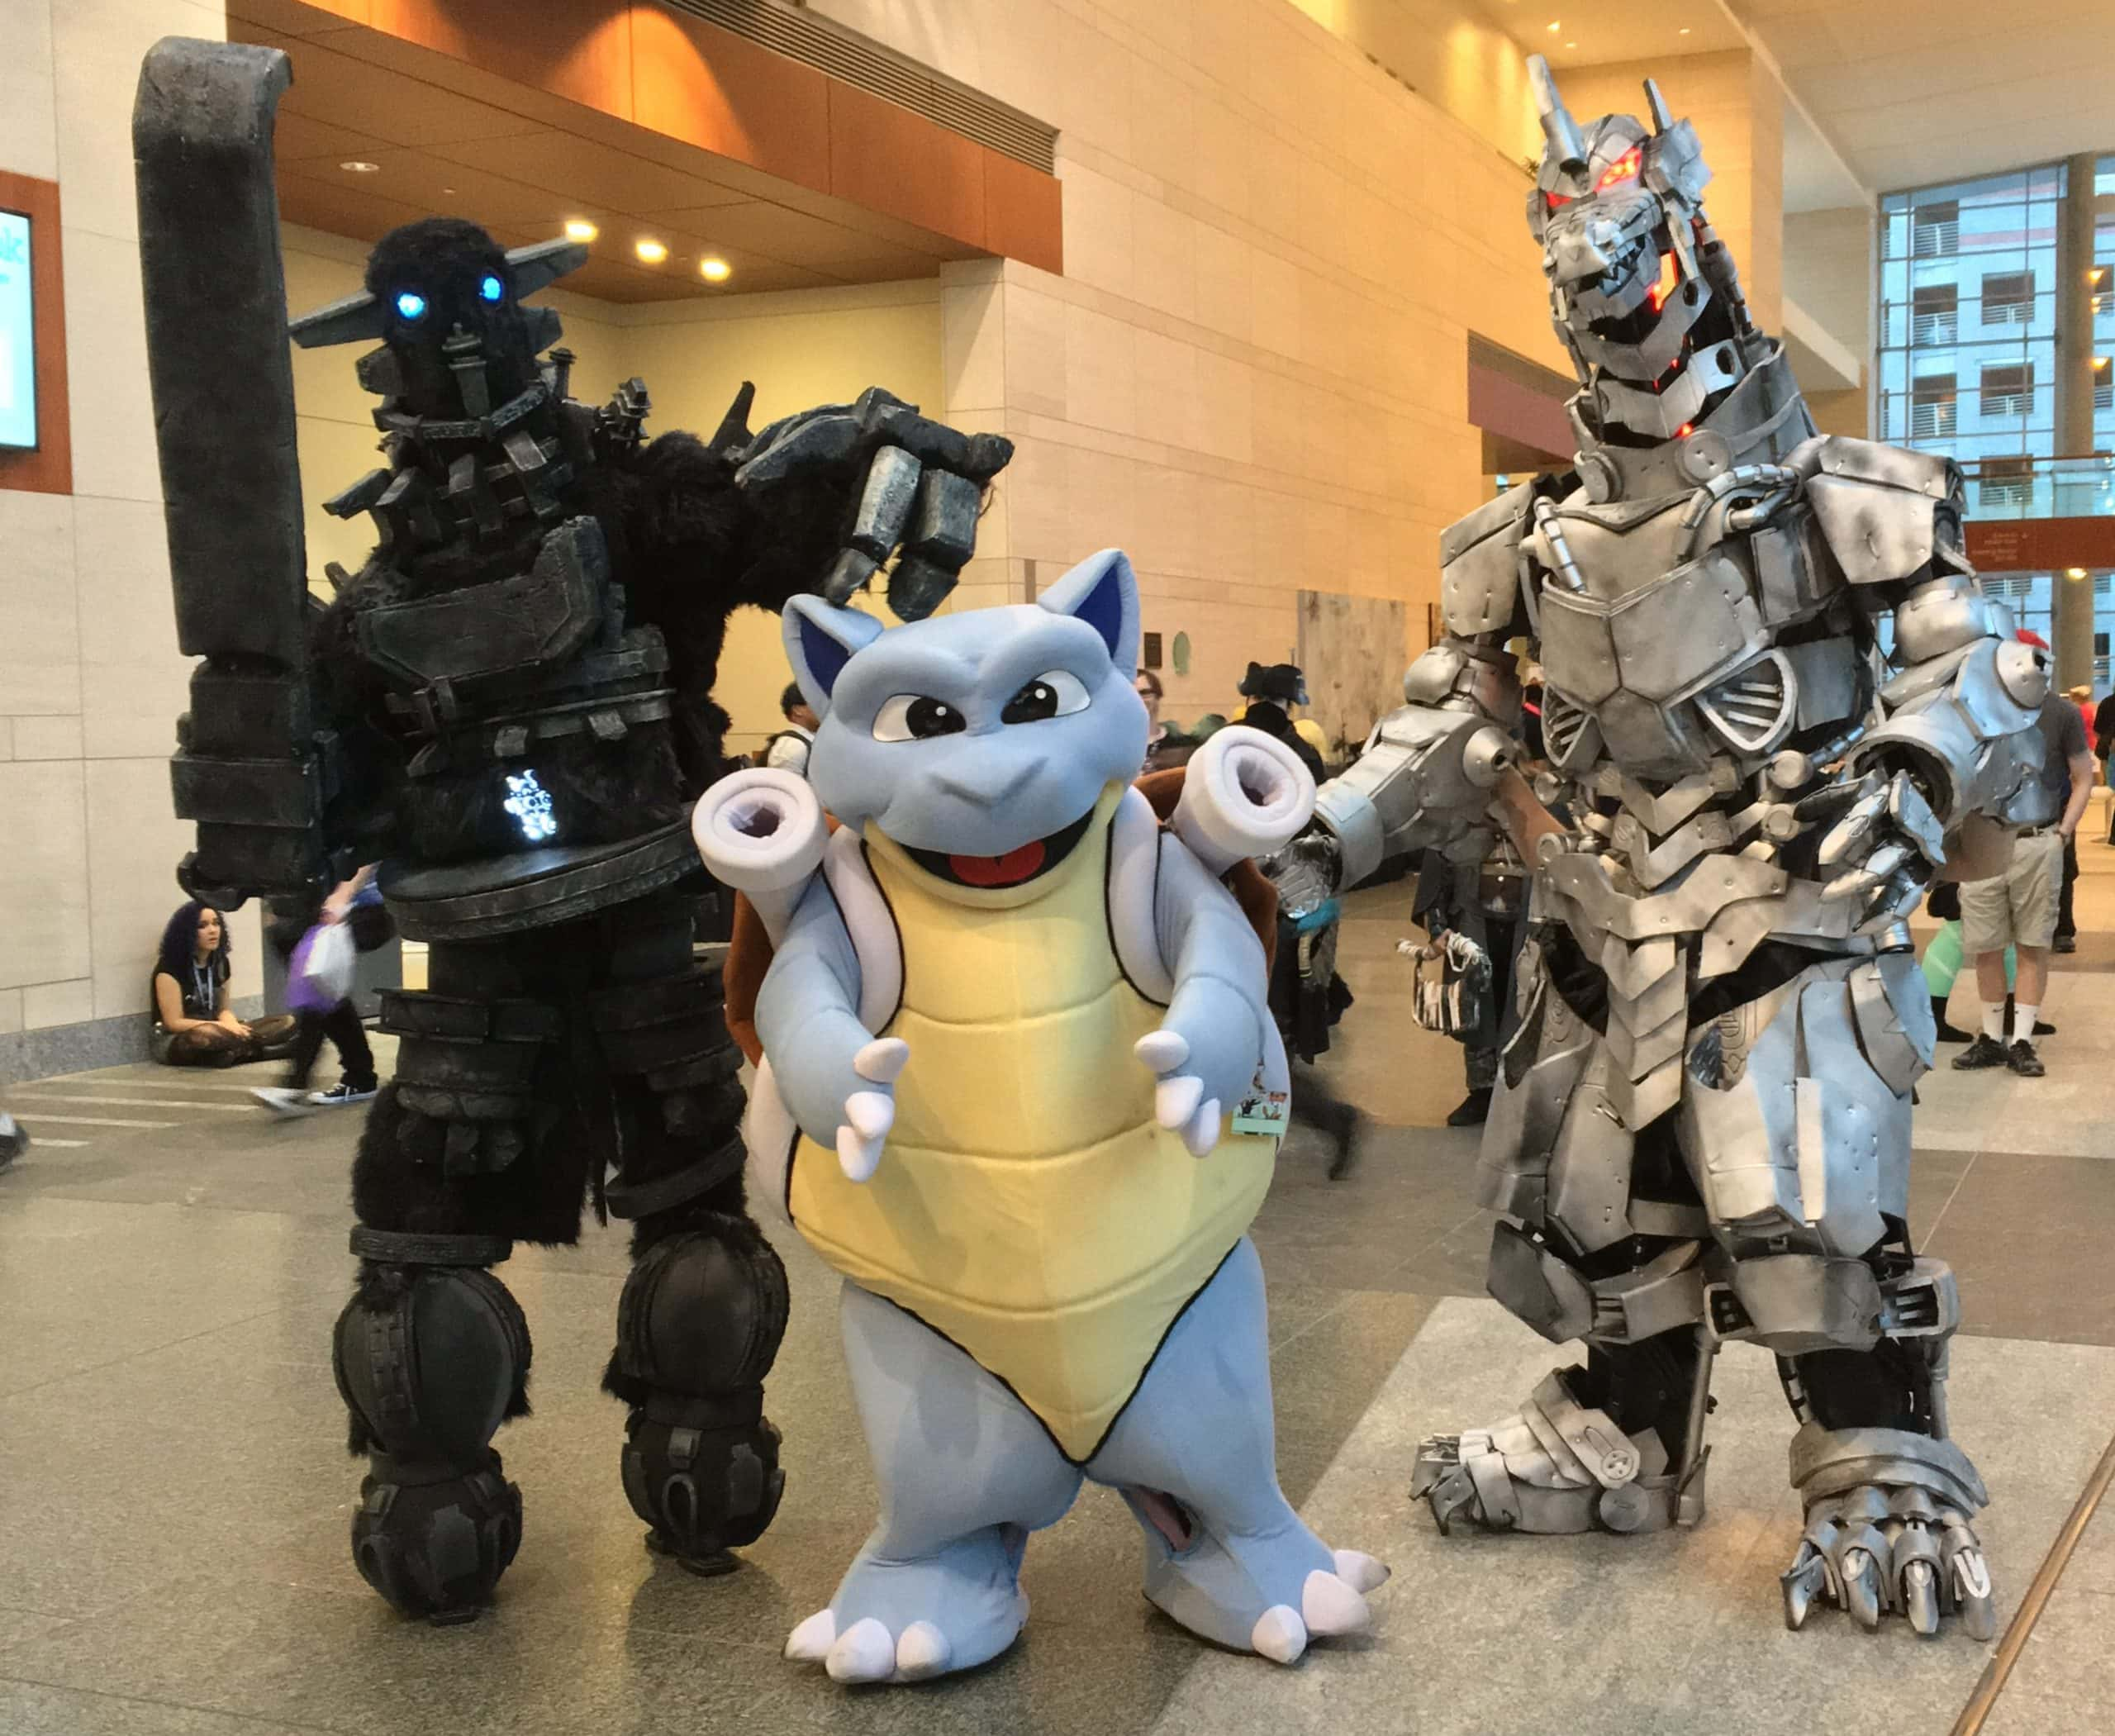 People cosplaying Blastoise, Mechagodzilla, and Gaius in the Raleigh Convention Center on a gray tile floor.